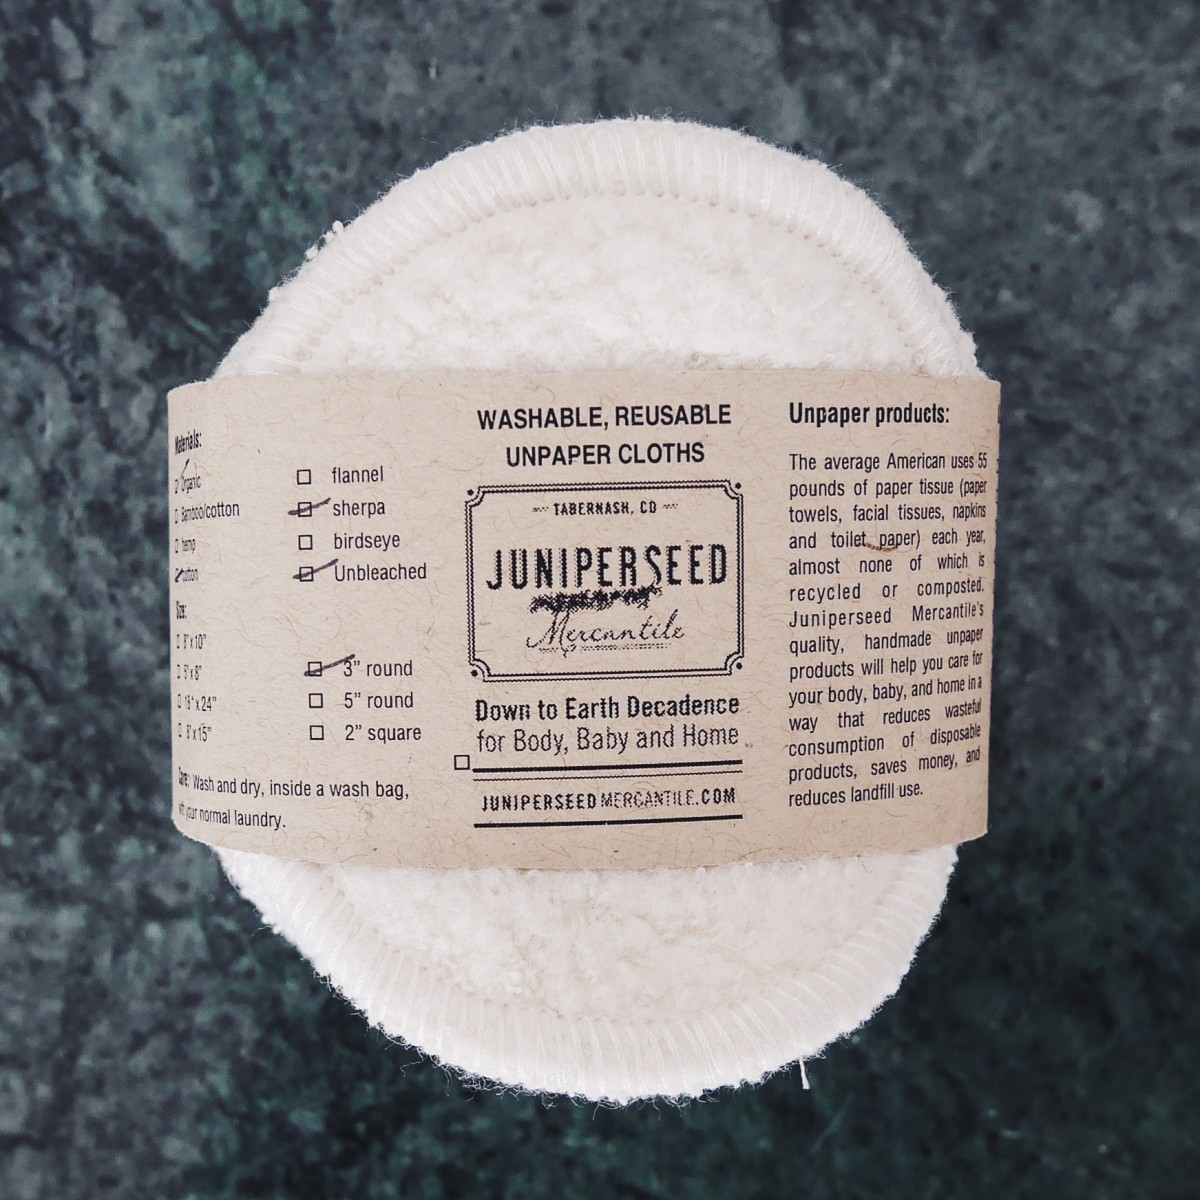 Zero waste, lifehack, lifestyle hack, go green, organic, natural, unbleached, cotton pads, reusable, zerowaste, reuse, reduce, environmentalist, environment, natural beauty, make-up removal, genbrug, bæredygtighed, vatrondeller, økologi, naturlig, simply beauty, simply fit, costume, easy, budget